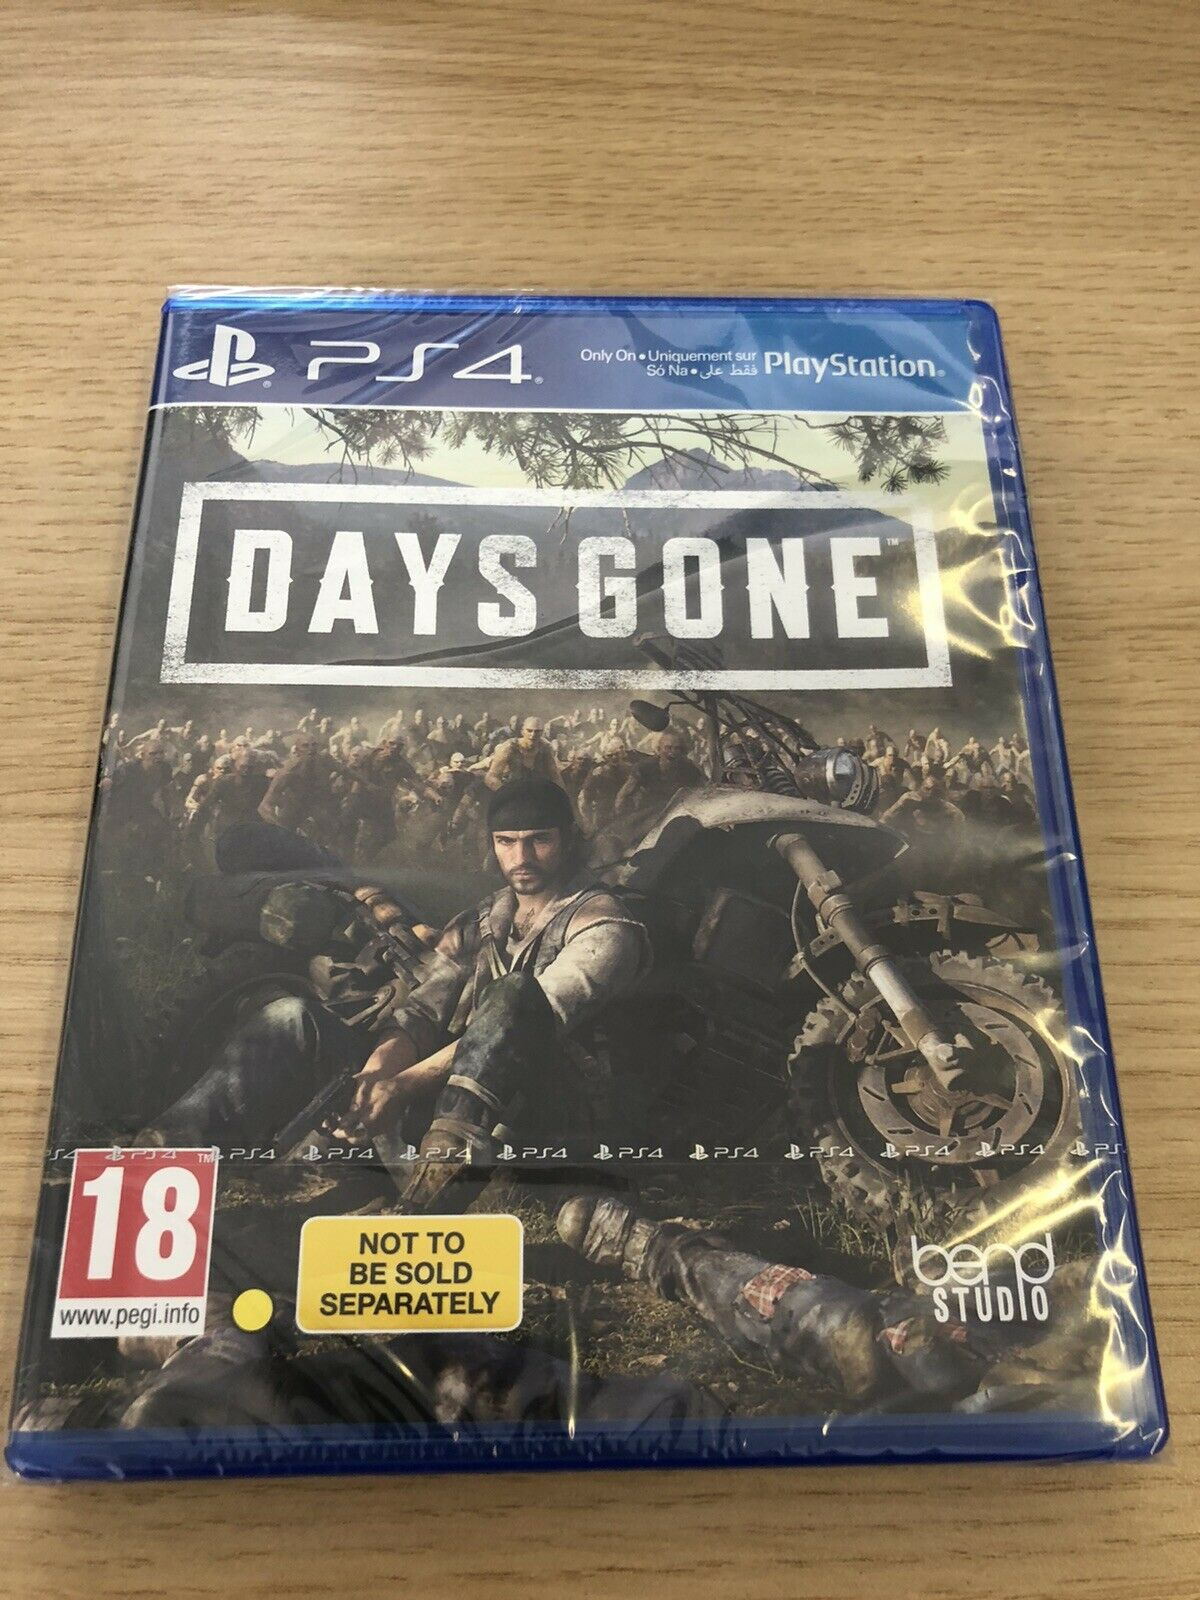 Days Gone (PS4) New & Sealed - In Stock Now - PAL - Region Free